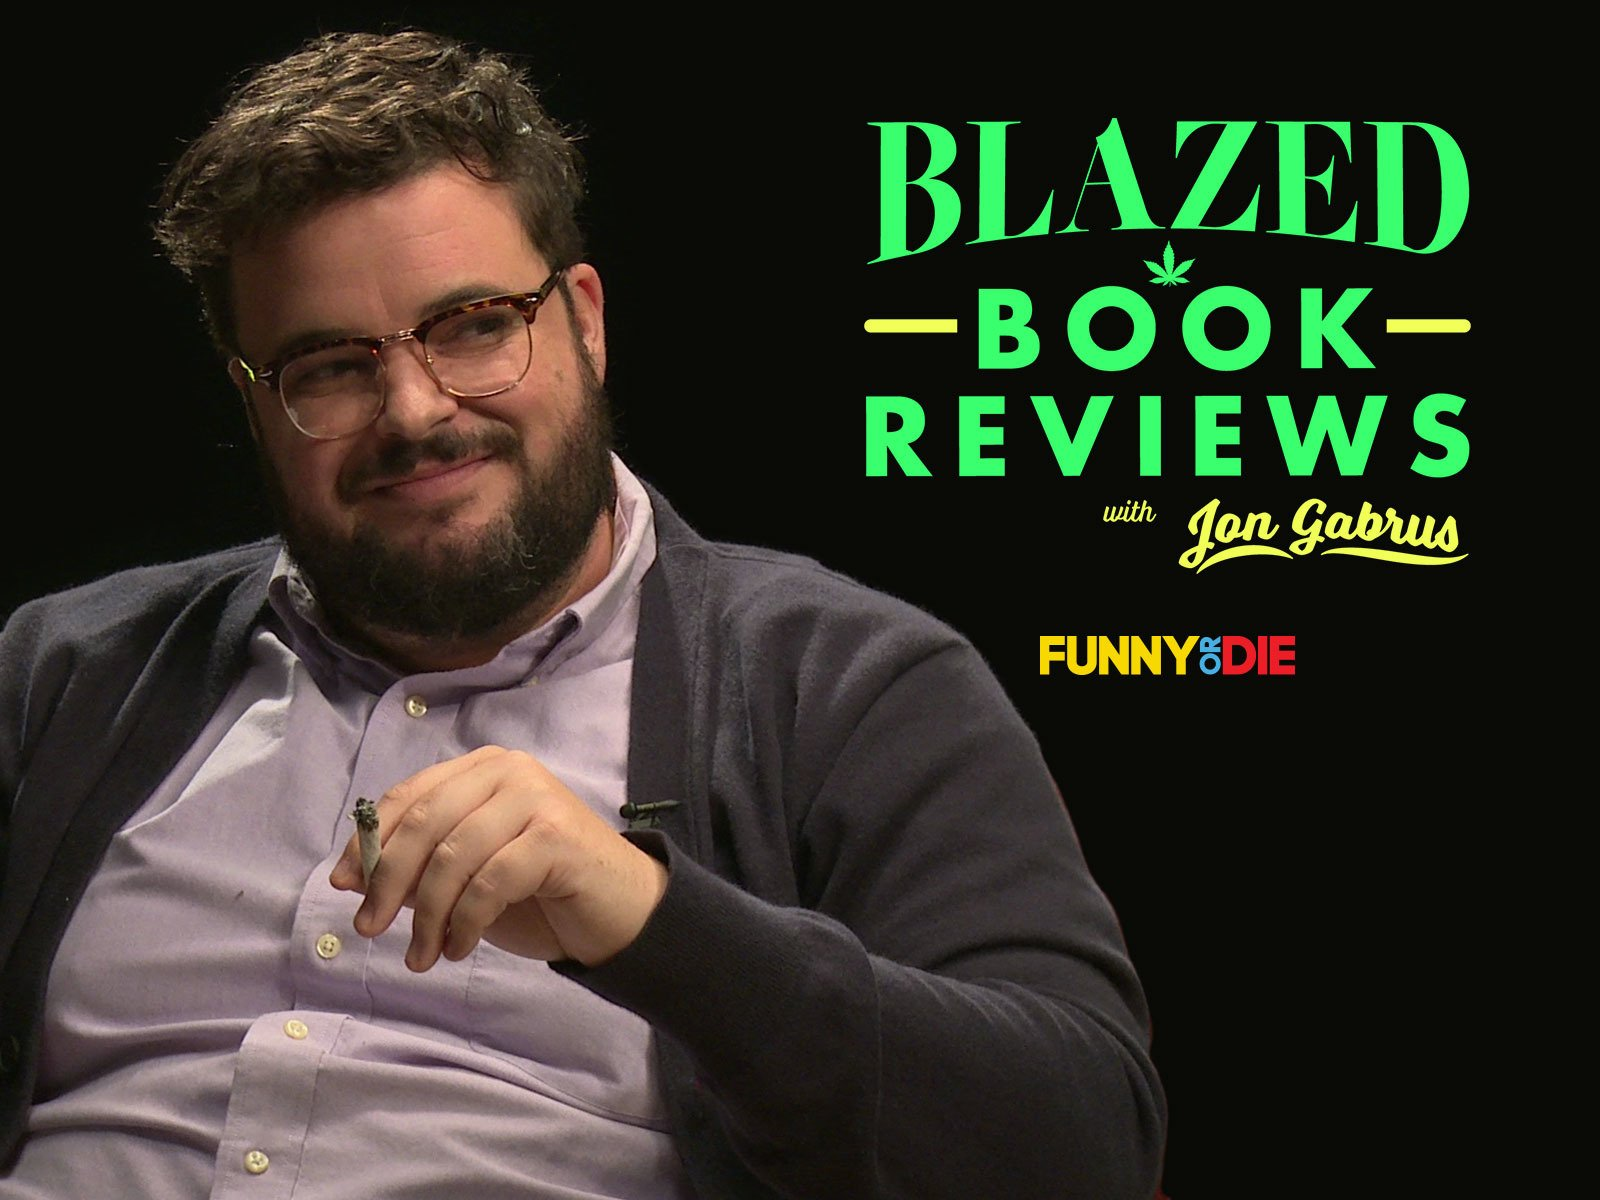 Blazed Book Reviews